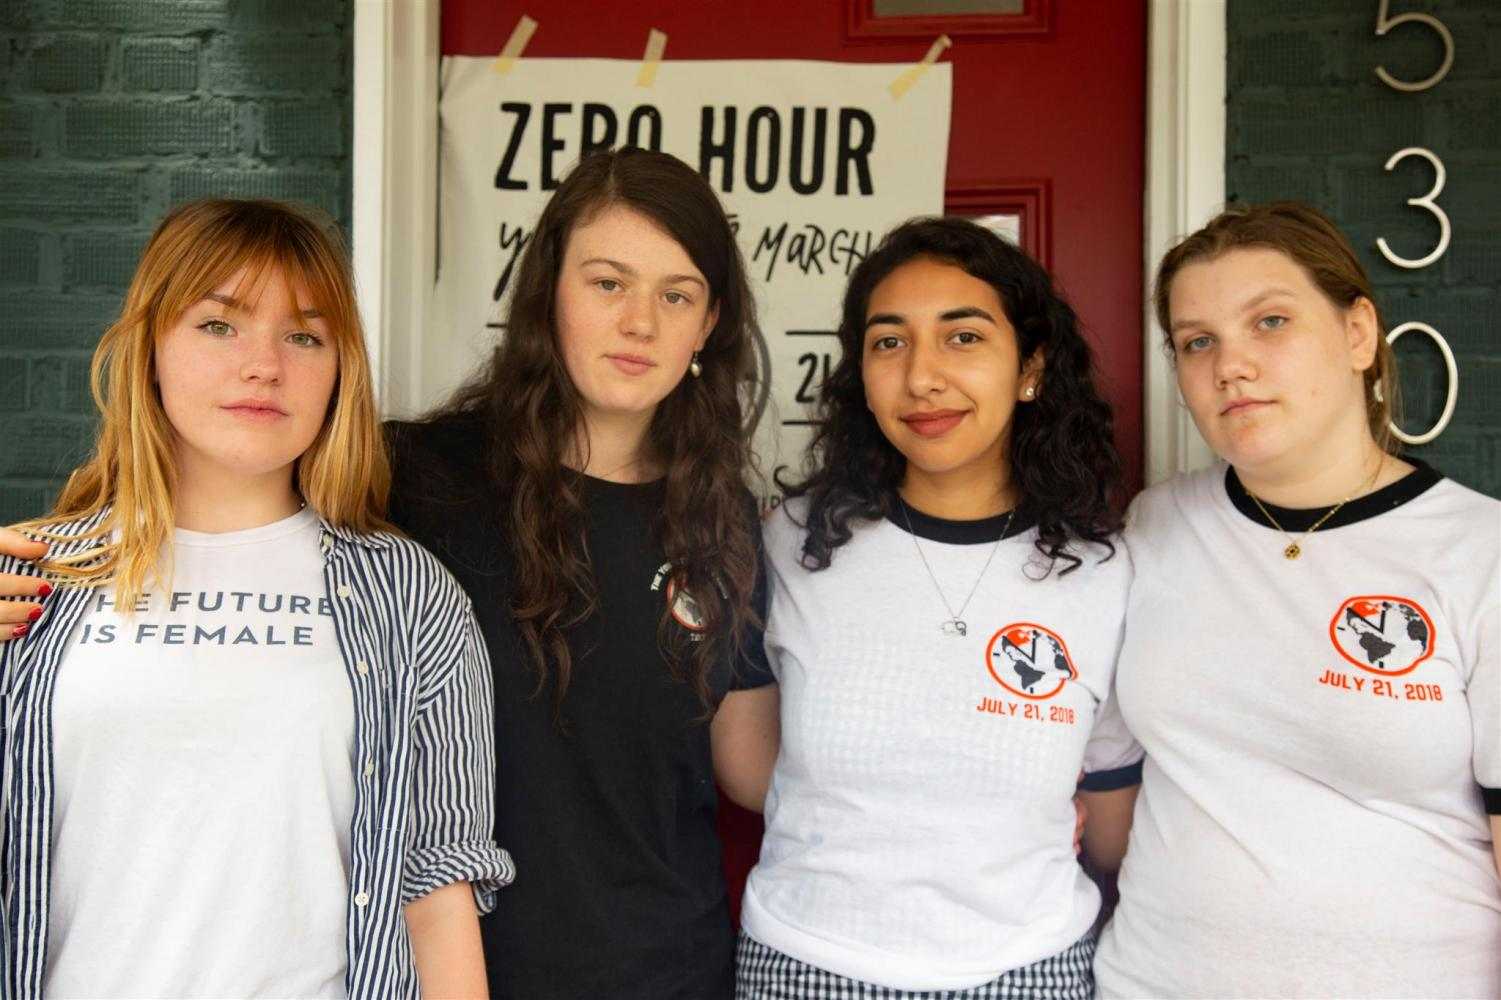 Esme Rice (left) stands with other members of the Zero Hour team. (Courtesy of Greenpeace)